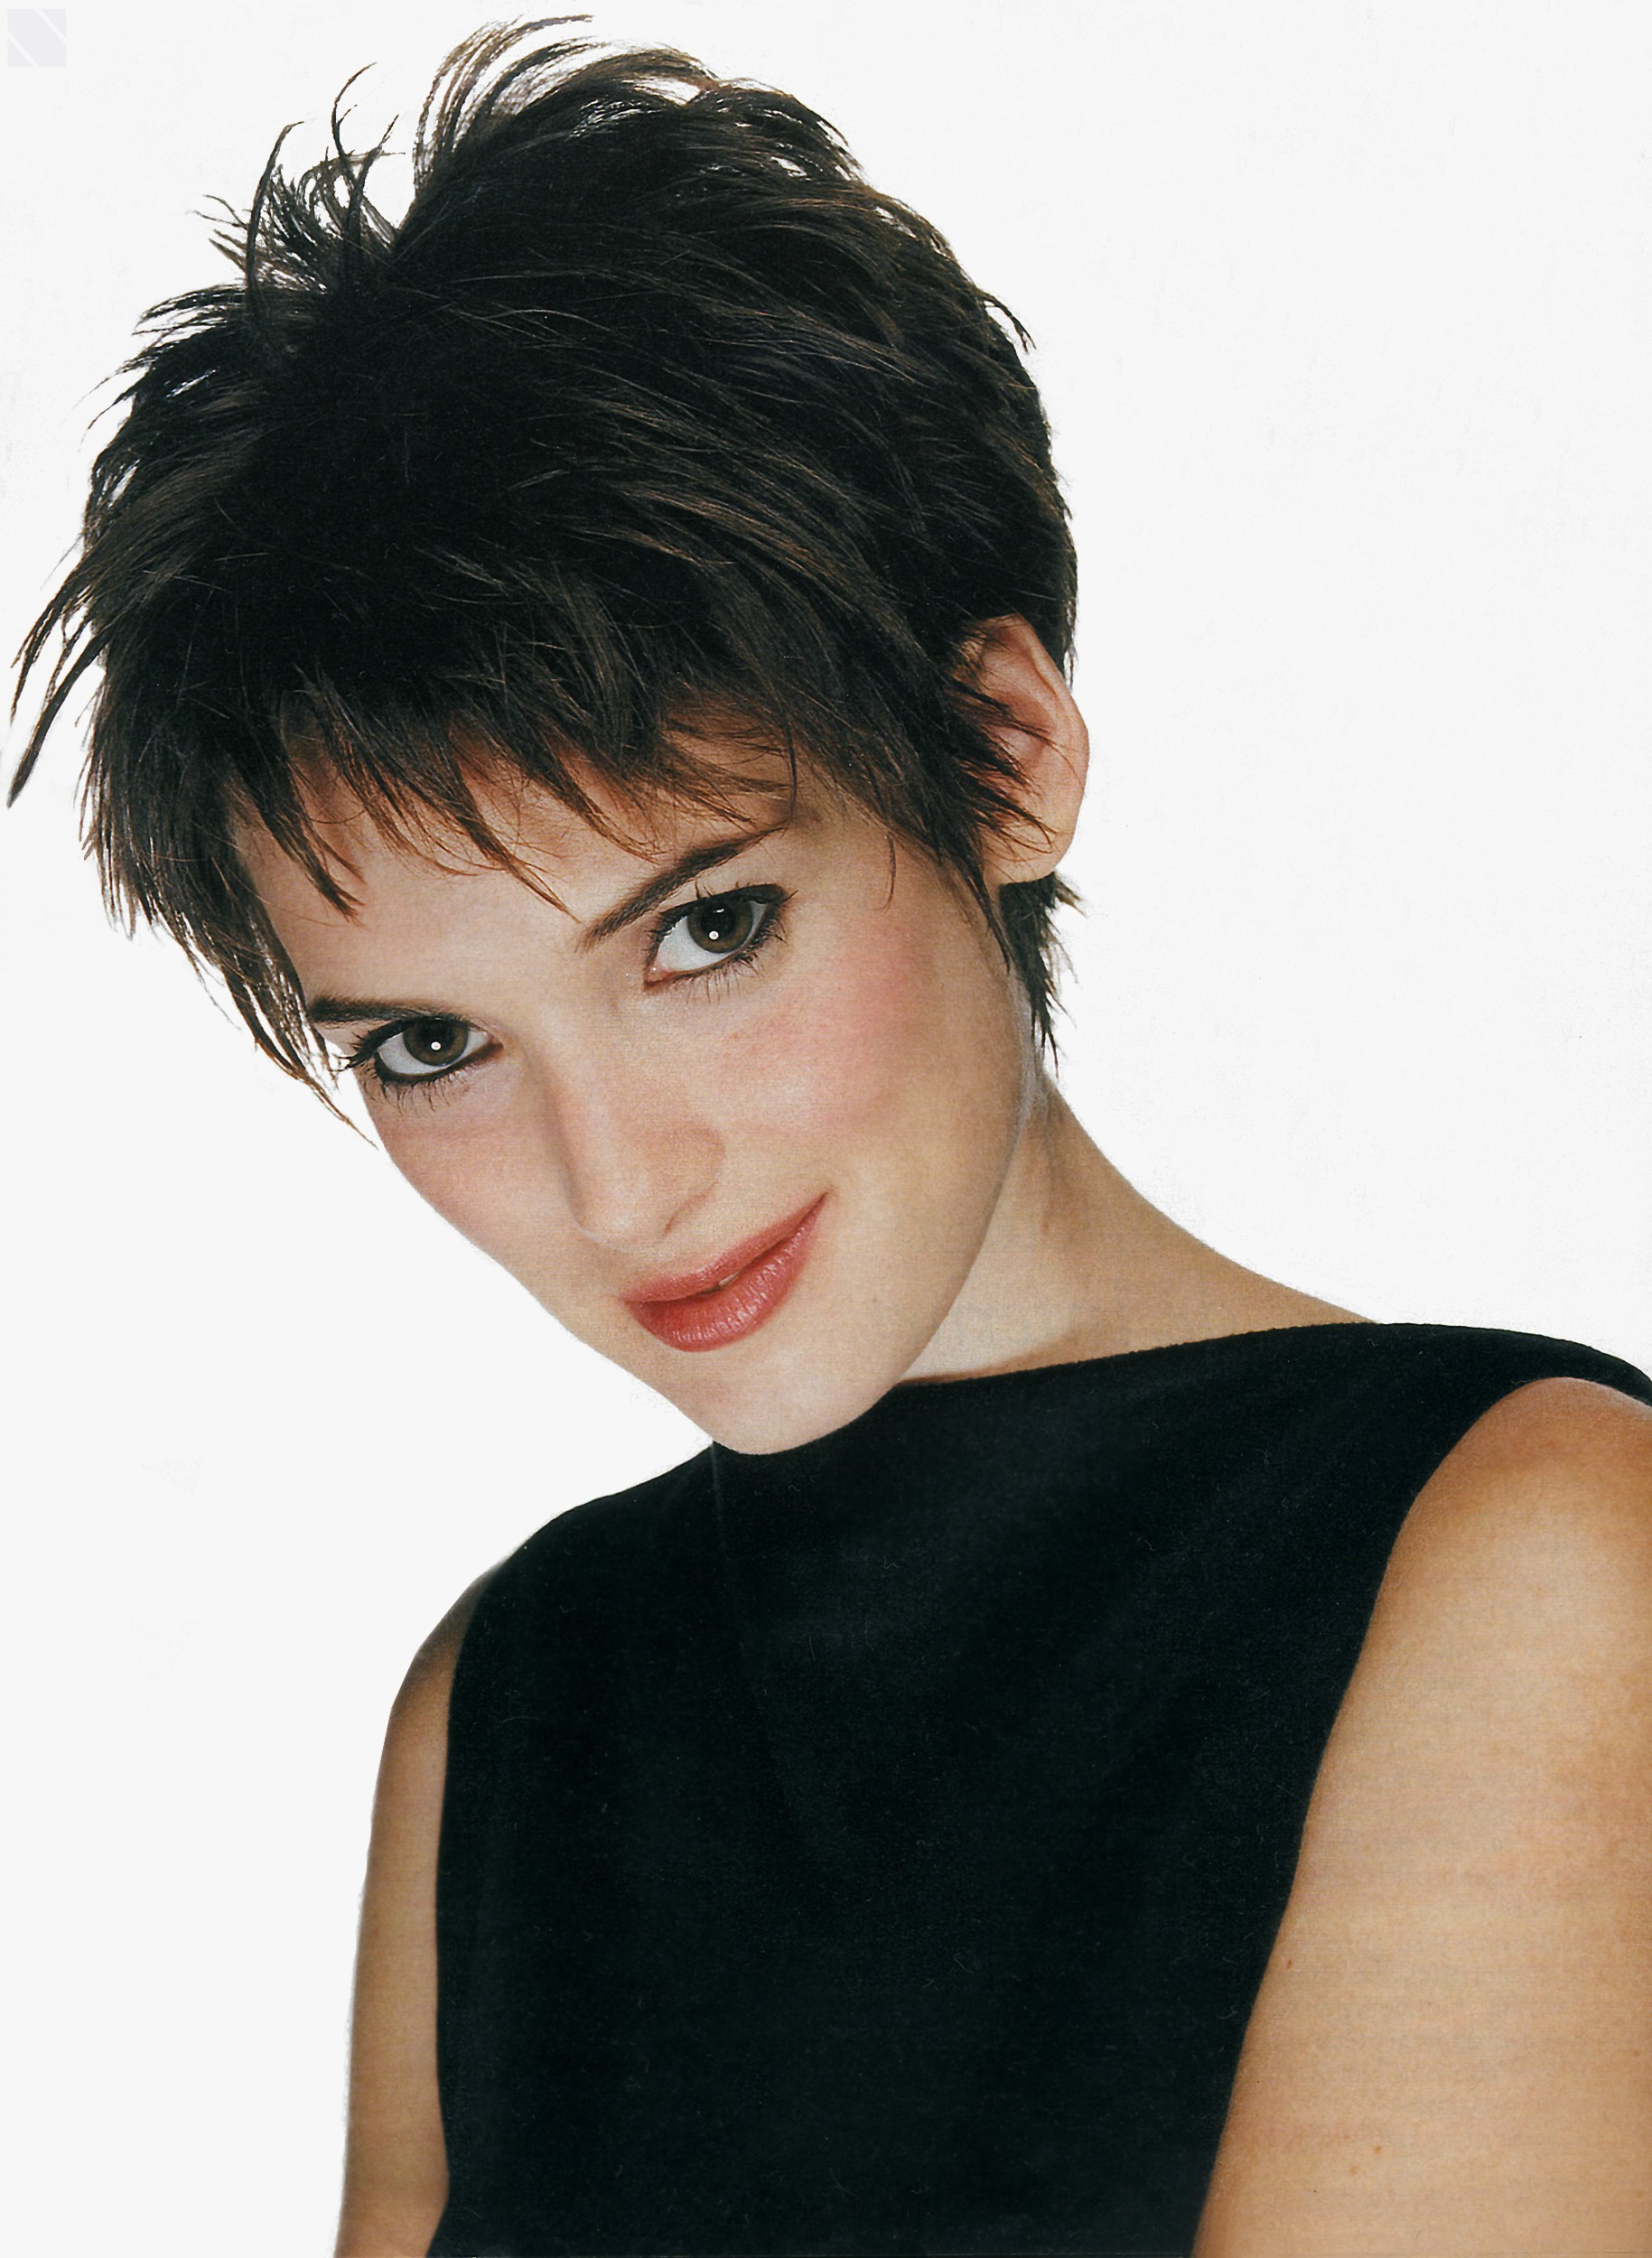 Winona Ryder Photo 80 Of 340 Pics Wallpaper Photo